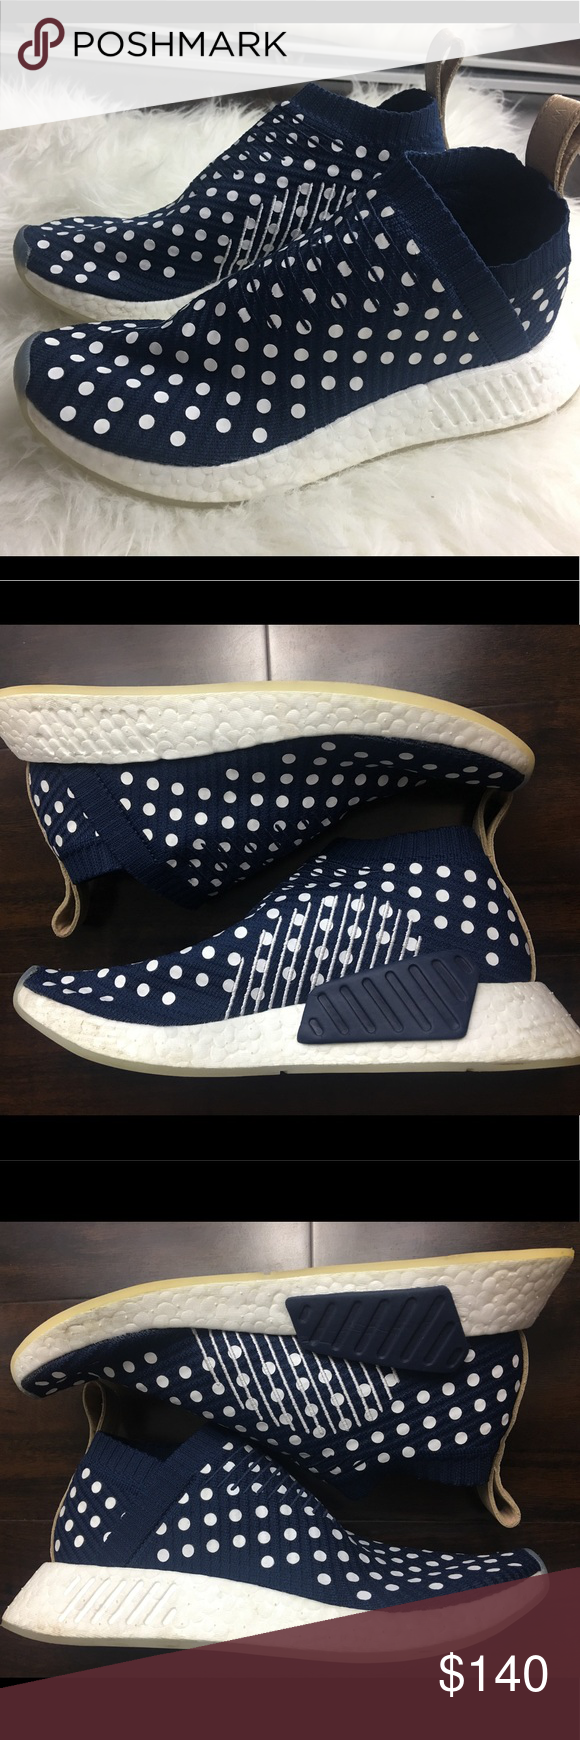 2b2ee831b Adidas NMD CS1 city sock Blue polka dot Women US 8 purchased directly from  adidas.com. These are women s and they run true to size. Worn probably 4-5  times